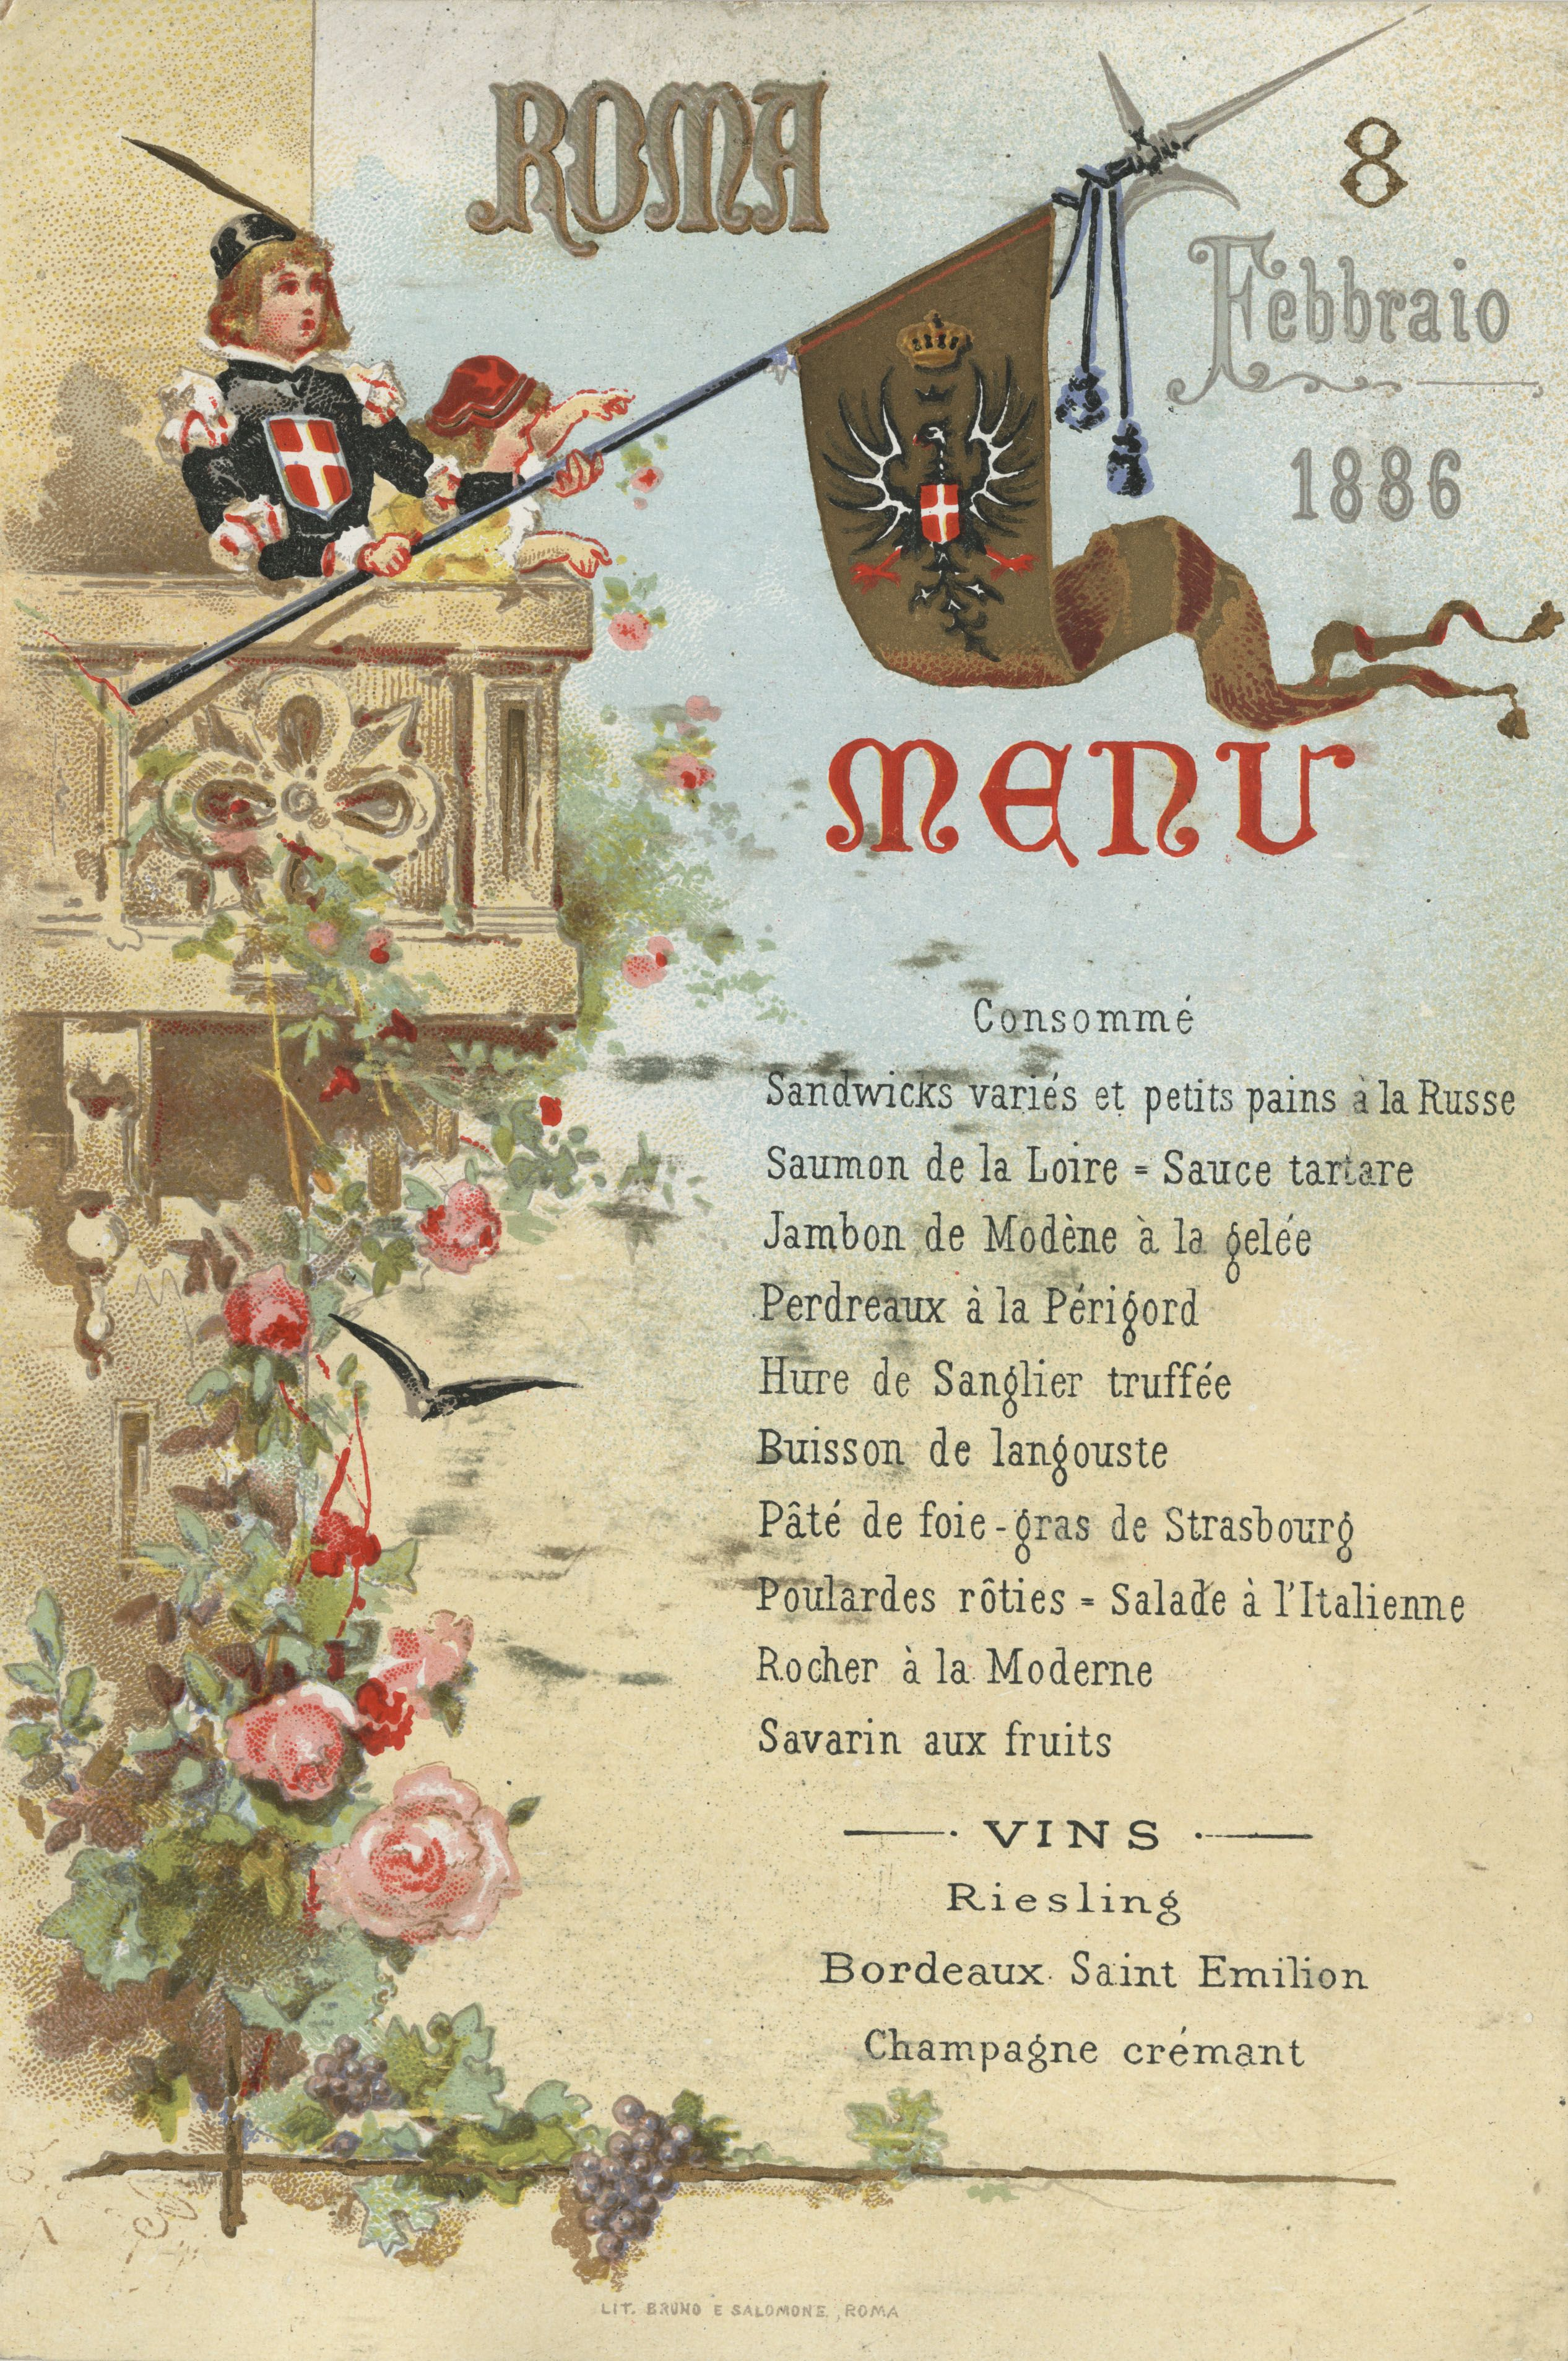 """The restaurant menu for the House of Savory Family residence in Rome, Itay, February 8, 1886. Part of the UNLV Libraries """"Menus: The Art of Dining"""" digital collection. #UNLV"""